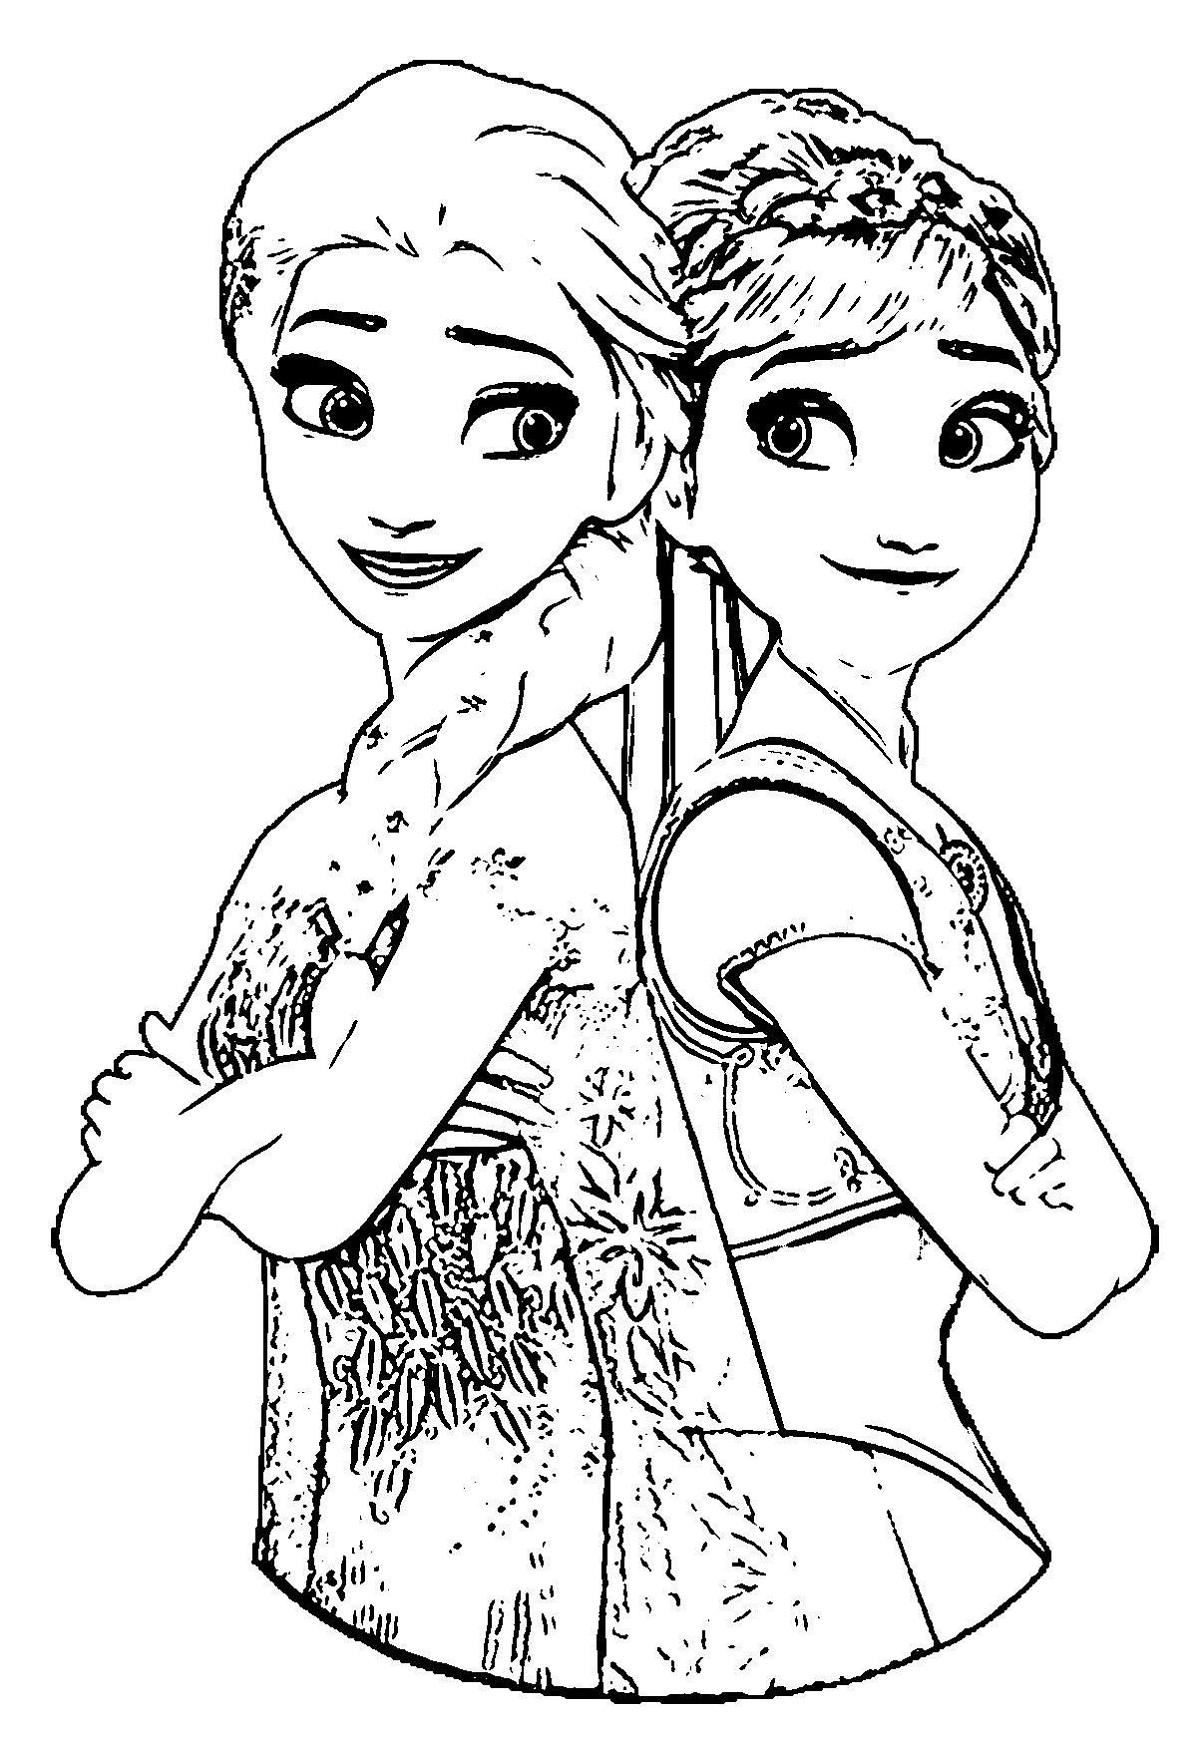 coloring pictures of frozen characters frozen 2 to print frozen 2 kids coloring pages coloring frozen pictures of characters